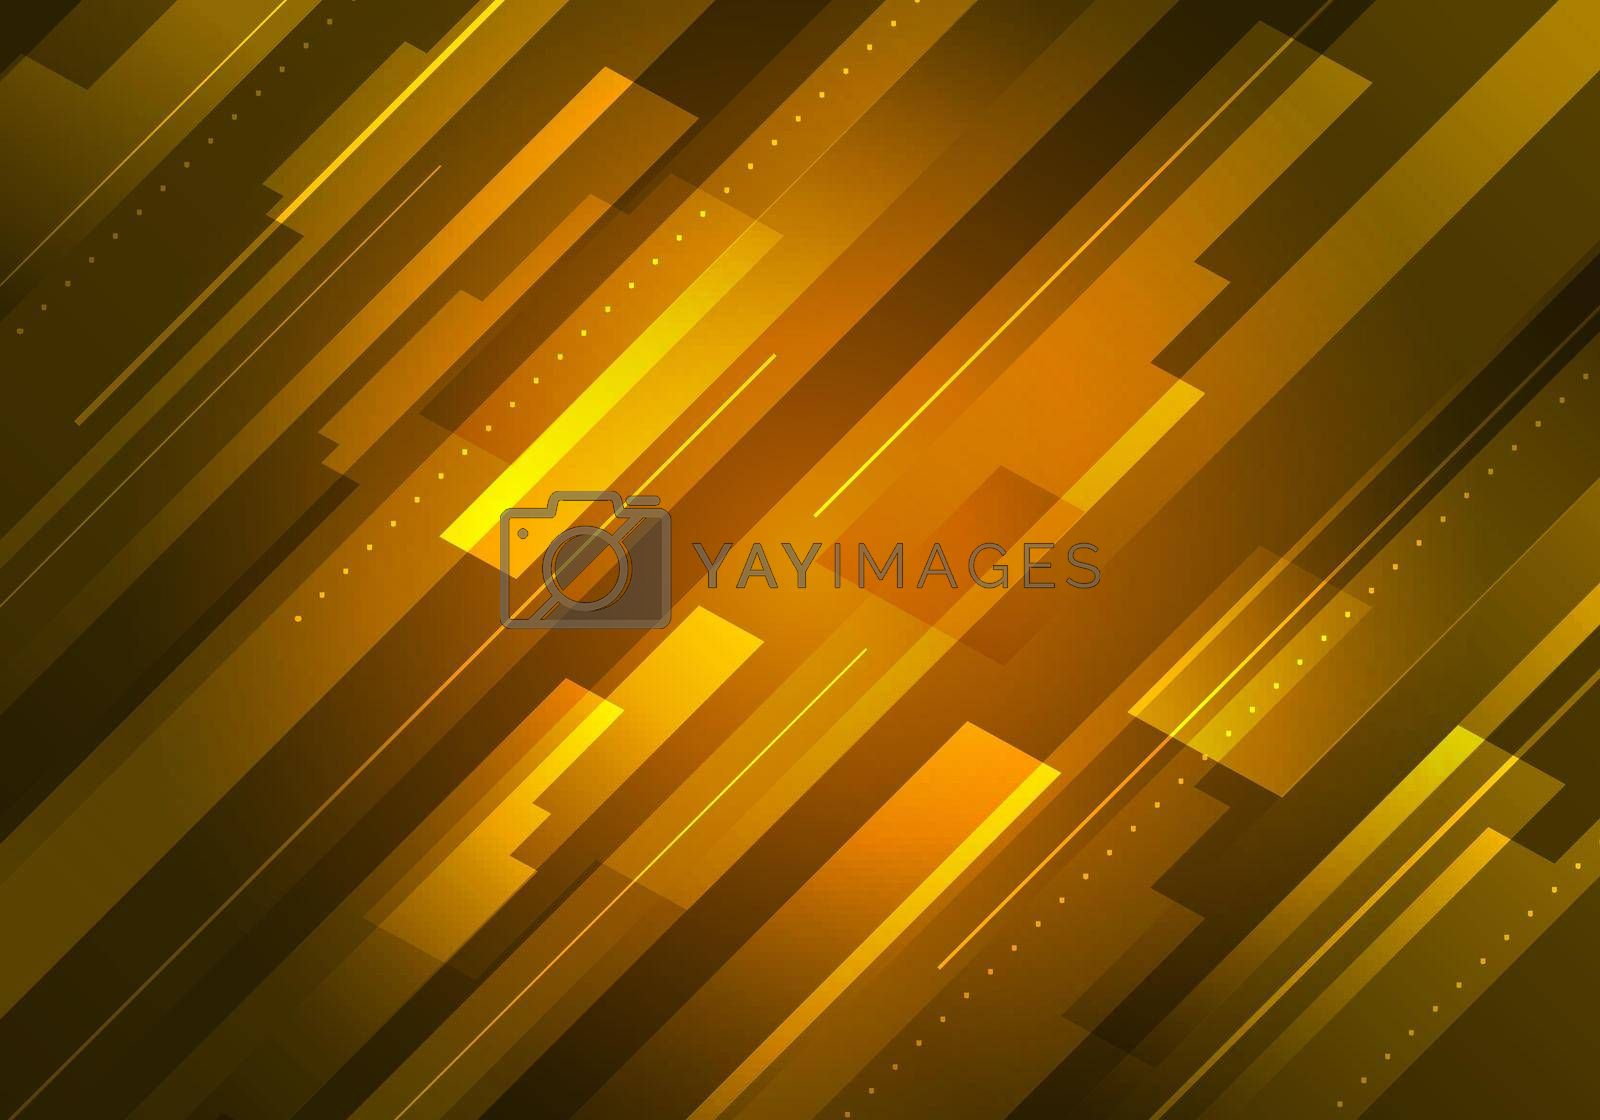 Abstract technology futuristic concept yellow glowing diagonal stripes layered on dark background. Vector illustration